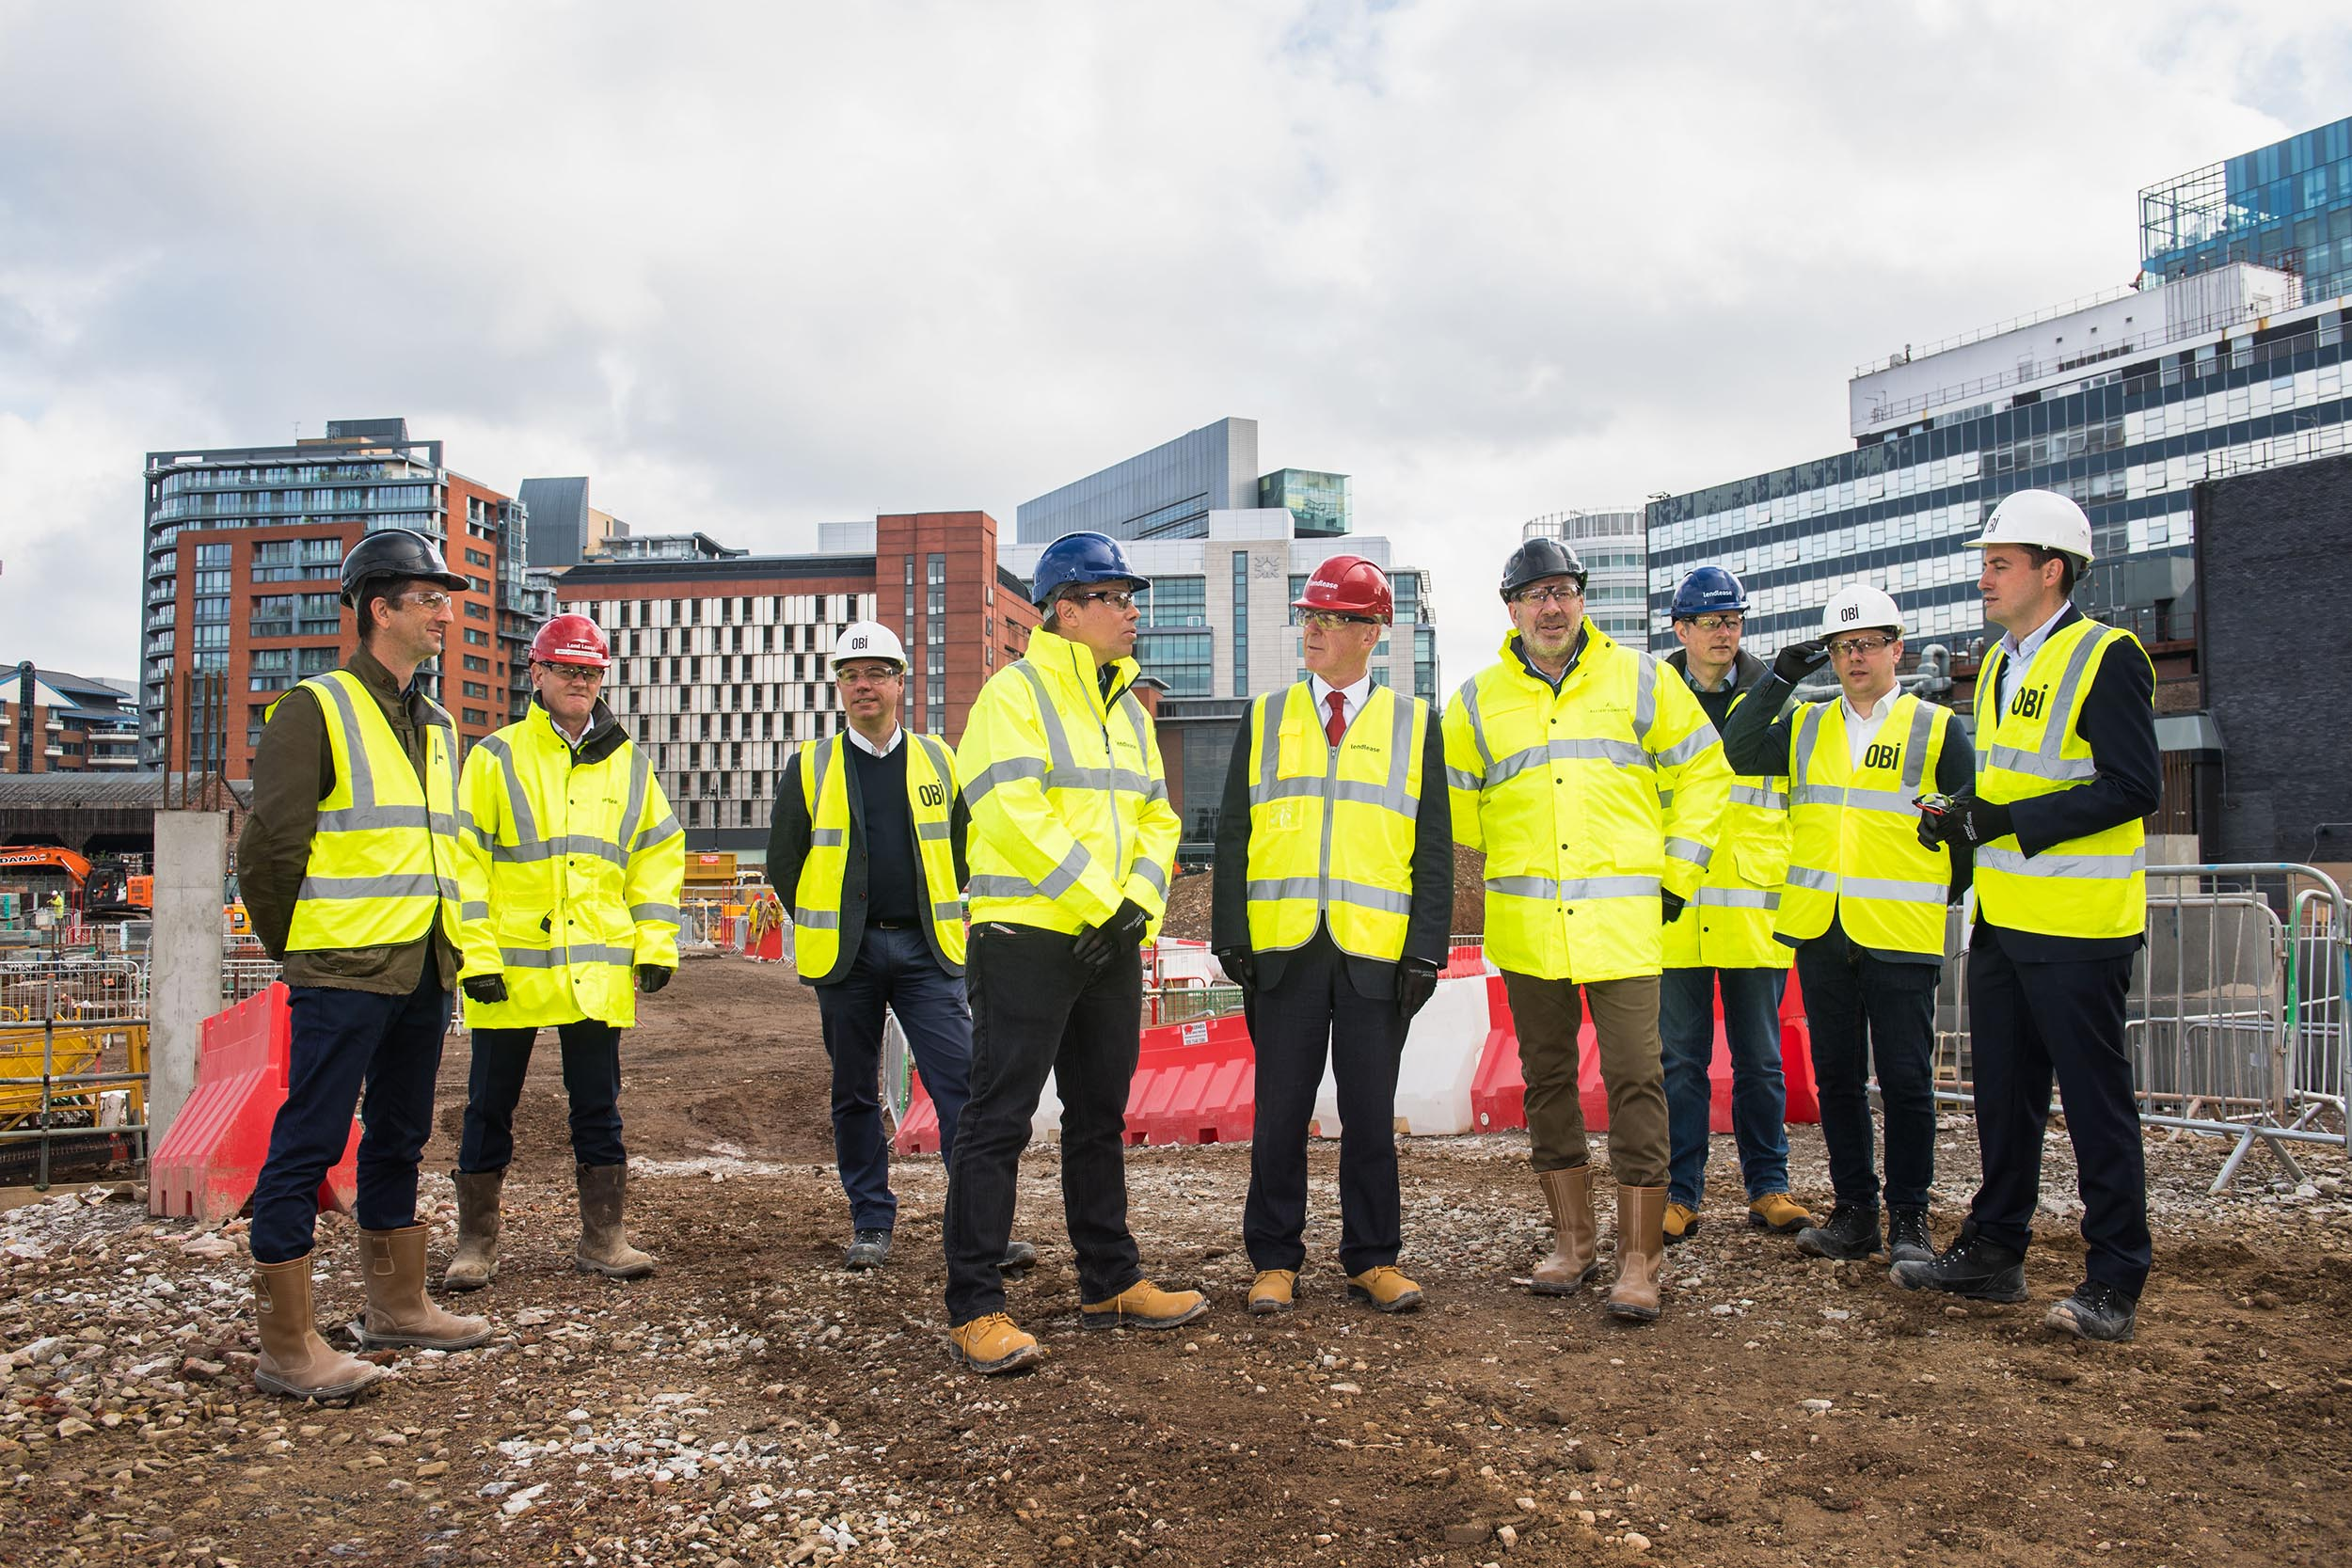 Ground Breaking Ceremony at old Granada TV Site in Manchester for booking.com St John's Quarter in Manchester photographer